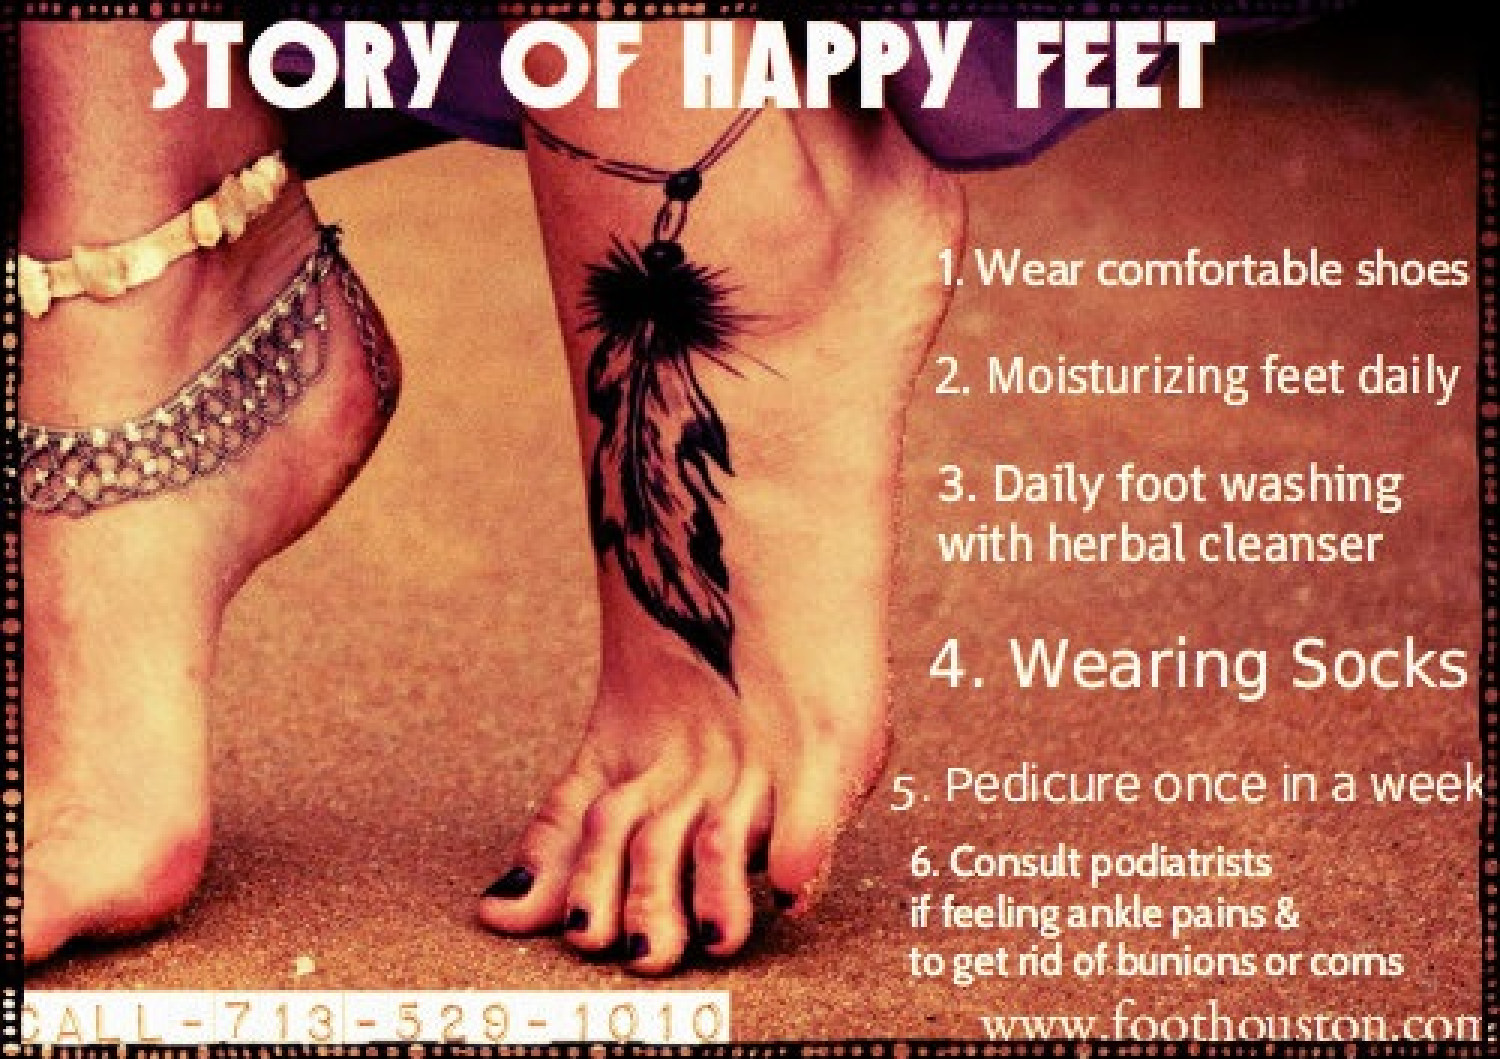 The Trick To Making Your Feet Happy The Trick To Making Your Feet Happy new images